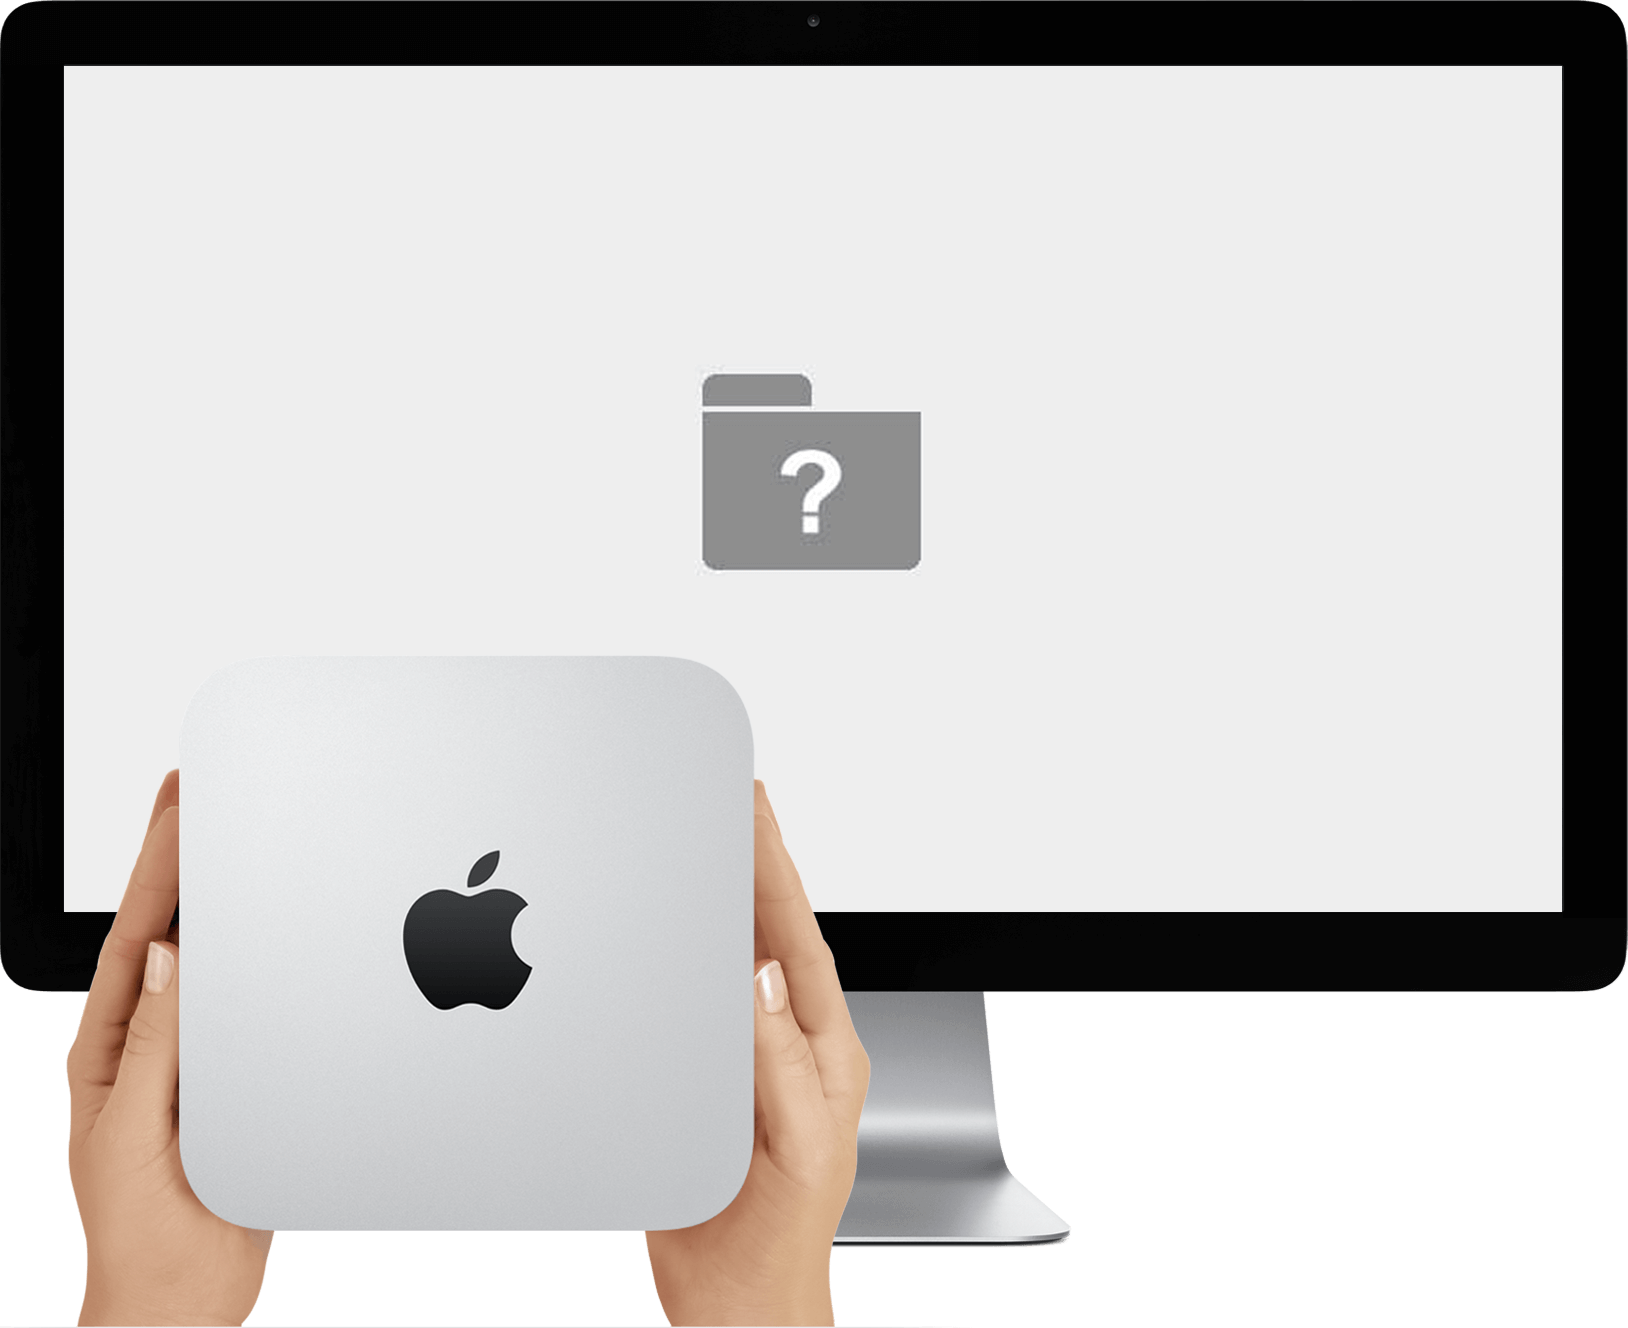 A Mac Mini and Apple Display. The Mac Mini cannot load macOS, so there is a folder with question mark on the screen